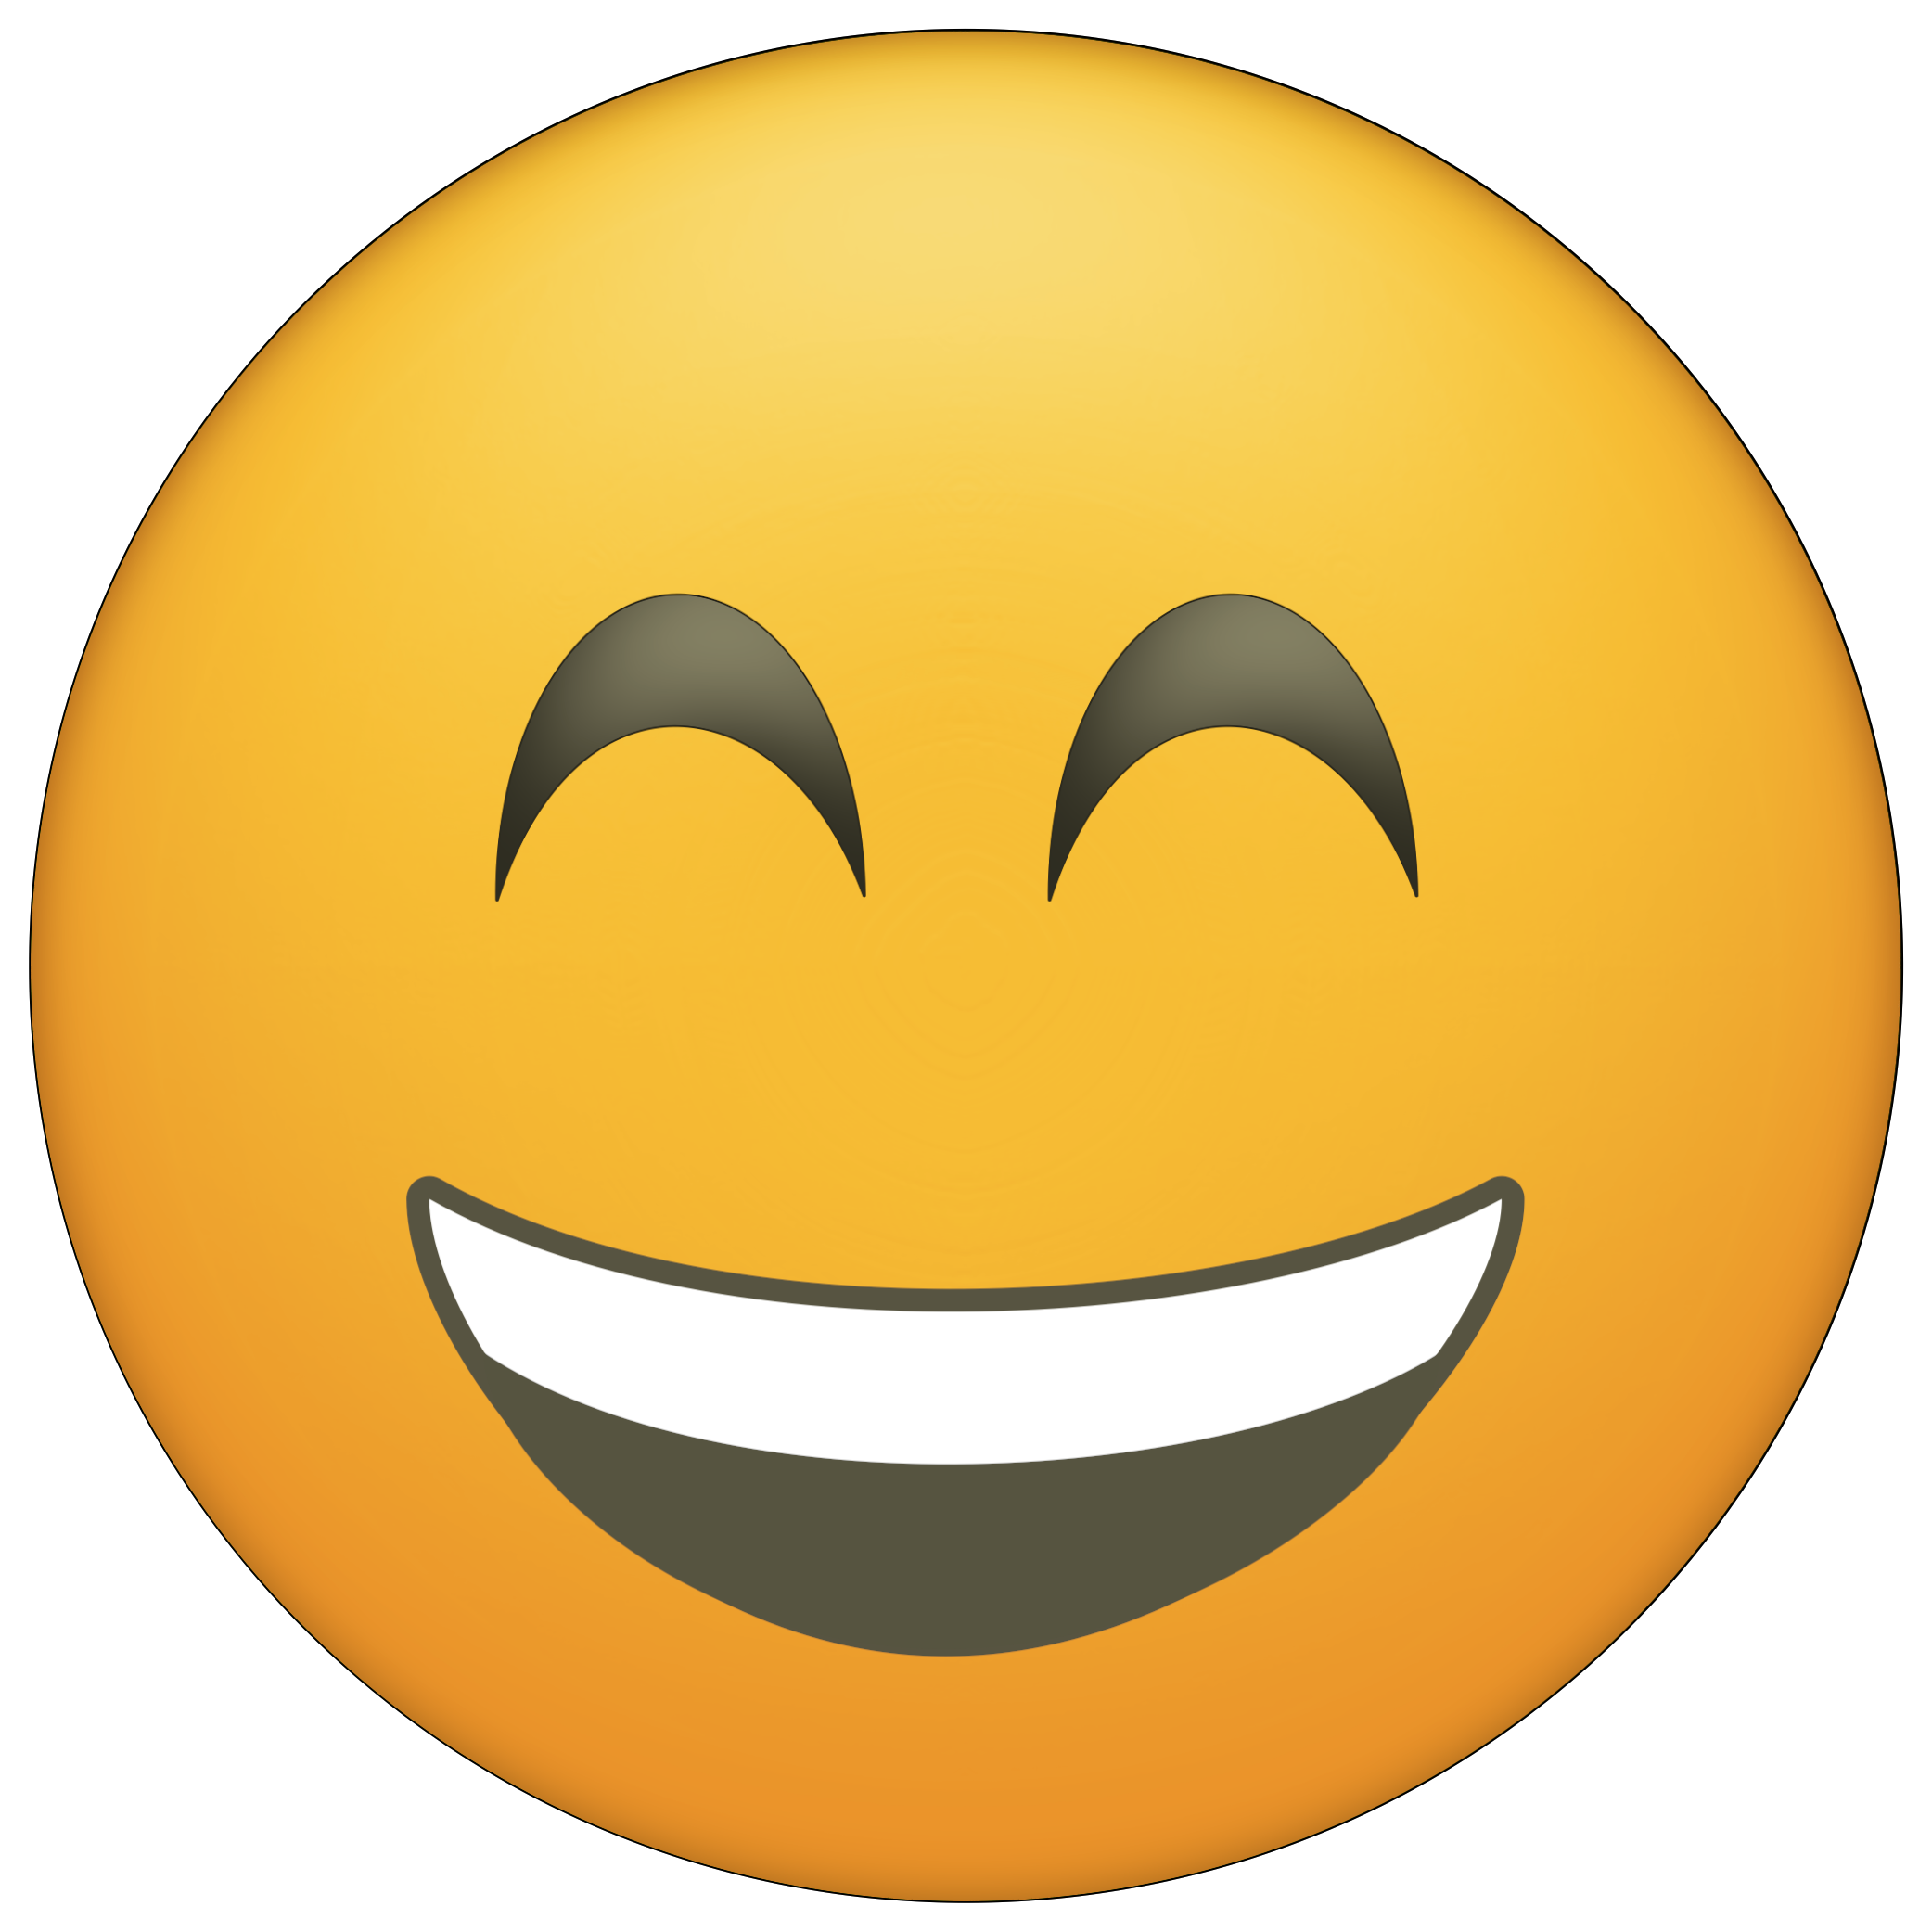 Smiley face button png. Www papertraildesign com wp